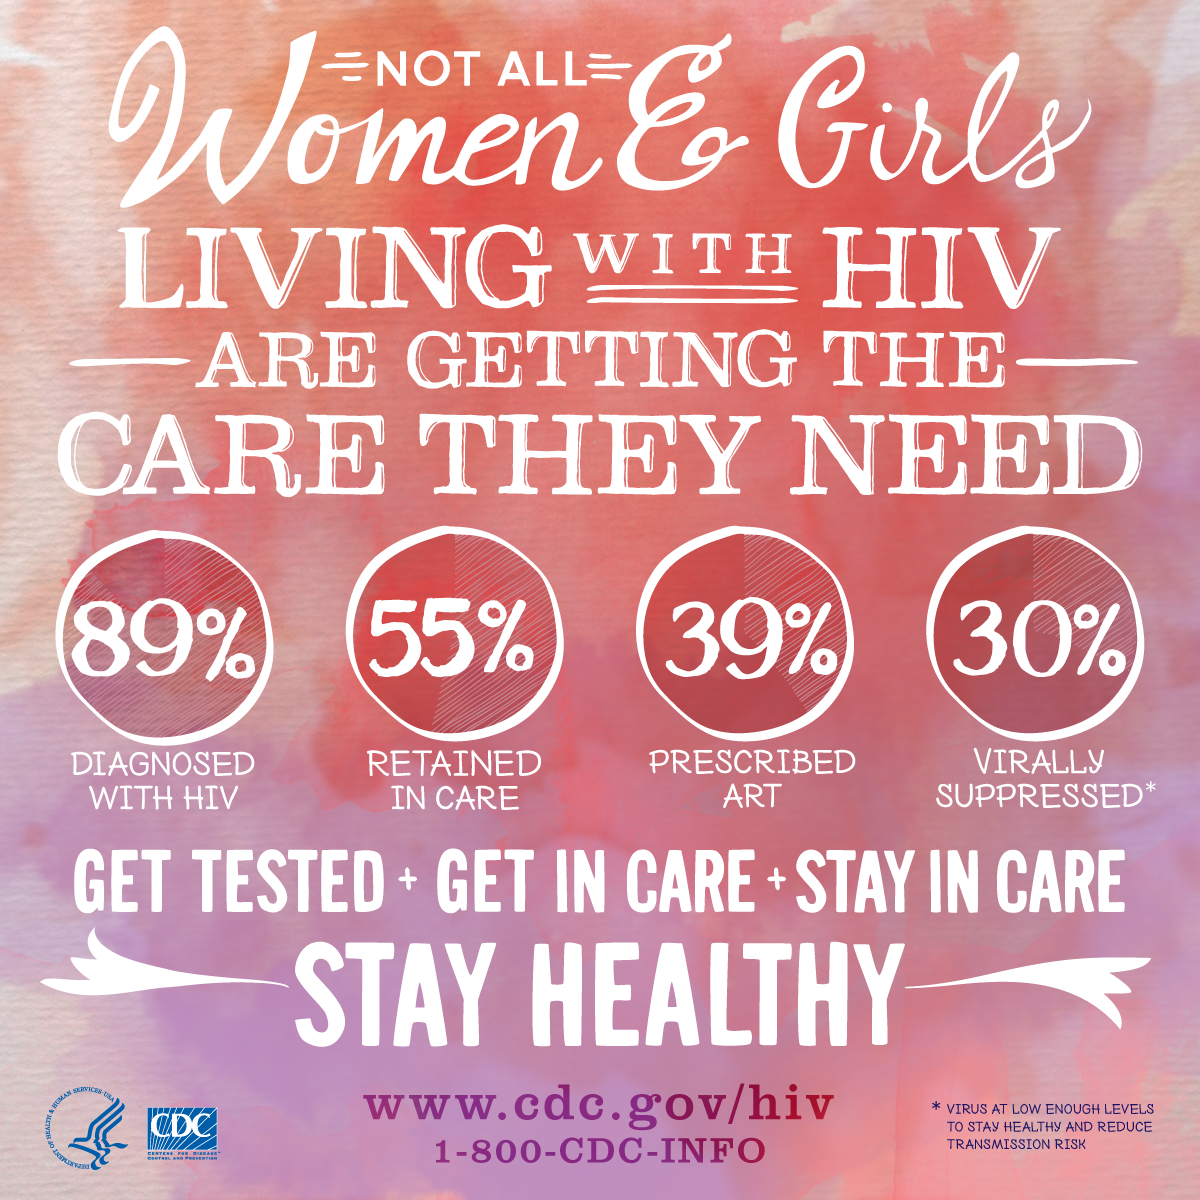 Not all women & girls living with HIV are getting the care they need. 89% diagnosed with HIV. 55% retained in care. 39% prescribed ART. 30% virally suprressed.* Get teseted + get in care + stay in care. Stay healthy. www.cdc.gov/hiv 1-800-CDC-INFO HHS, CDC *Virus at low enough levels to stay healthy and reduce transmission risk.